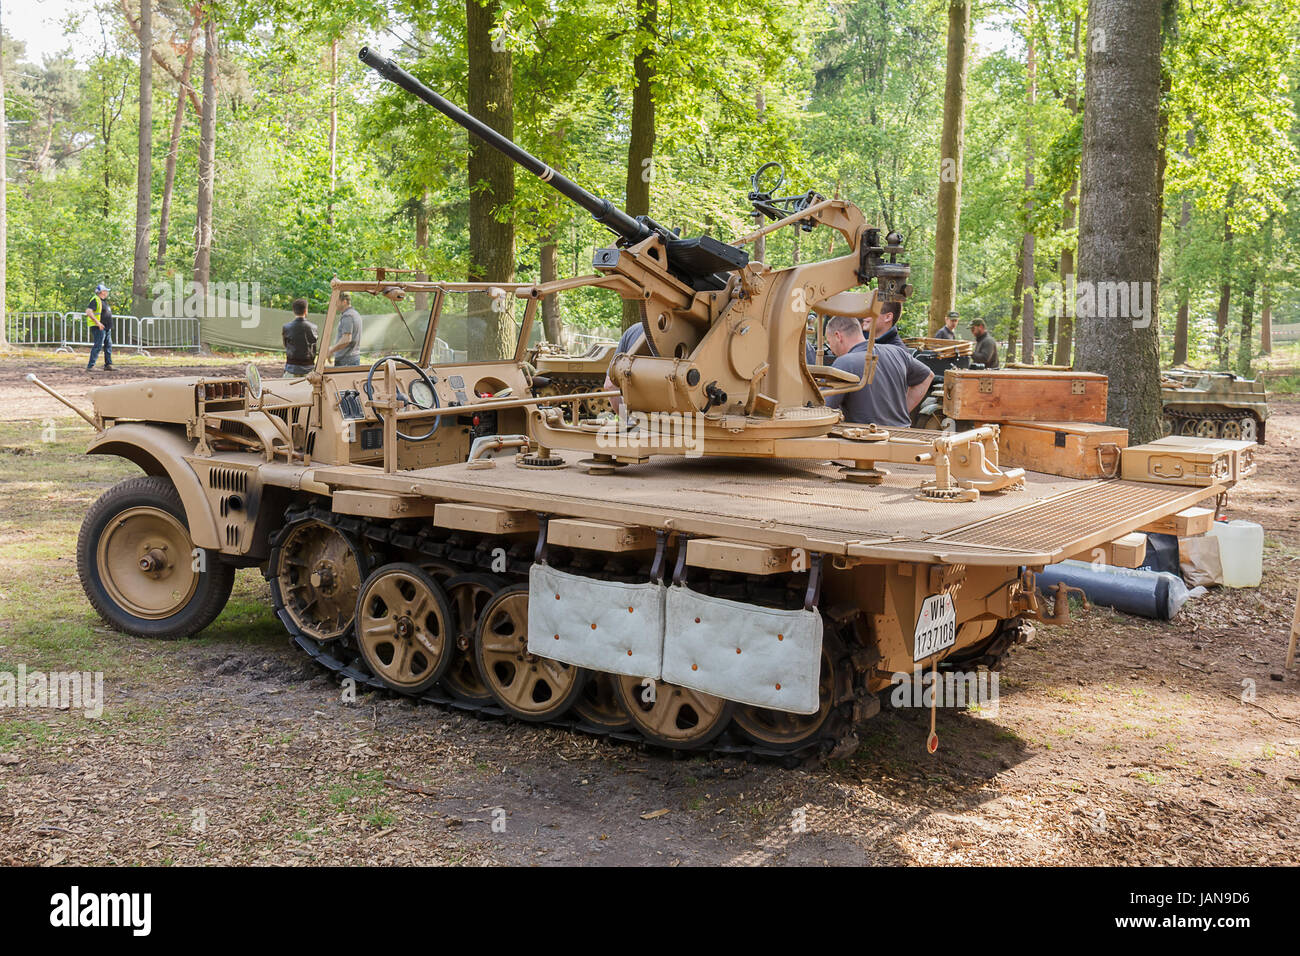 Demag Sd.Kfz. 10 with flak 38 at Militracks event - Stock Image